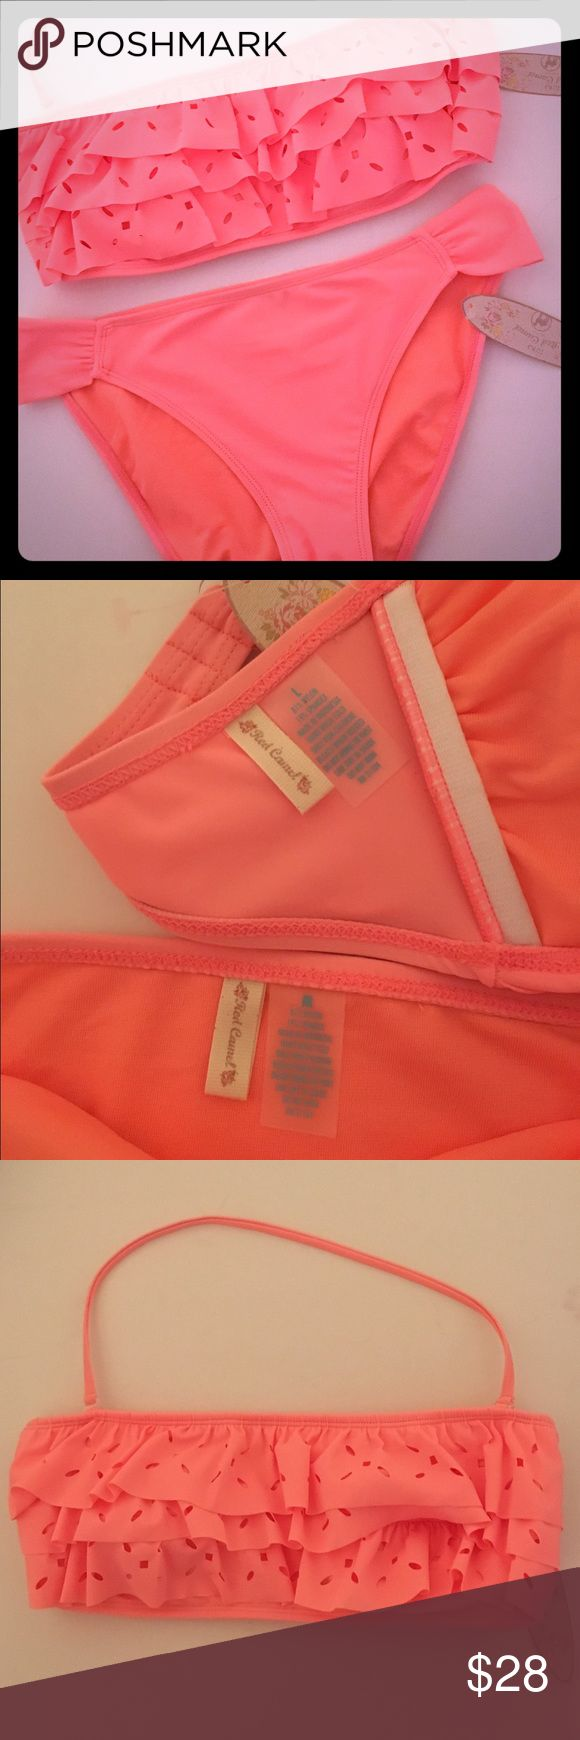 🎁Peach Bikini Set🎁 Get ready for spring break with this laser cut bikini! Peachy orange, ruffled top with laser cut insets, detachable halter strap, standard bikini bottoms. Both NWT, never worn, hygienic liner still attached to bottoms, purchased at Belk. 🚫TRADES🚫LOWBALLING🚫PAYPAL🚫 ✅BUNDLES✅REASONABLE OFFERS✅ Happy Poshing! 😄 Red Camel Swim Bikinis